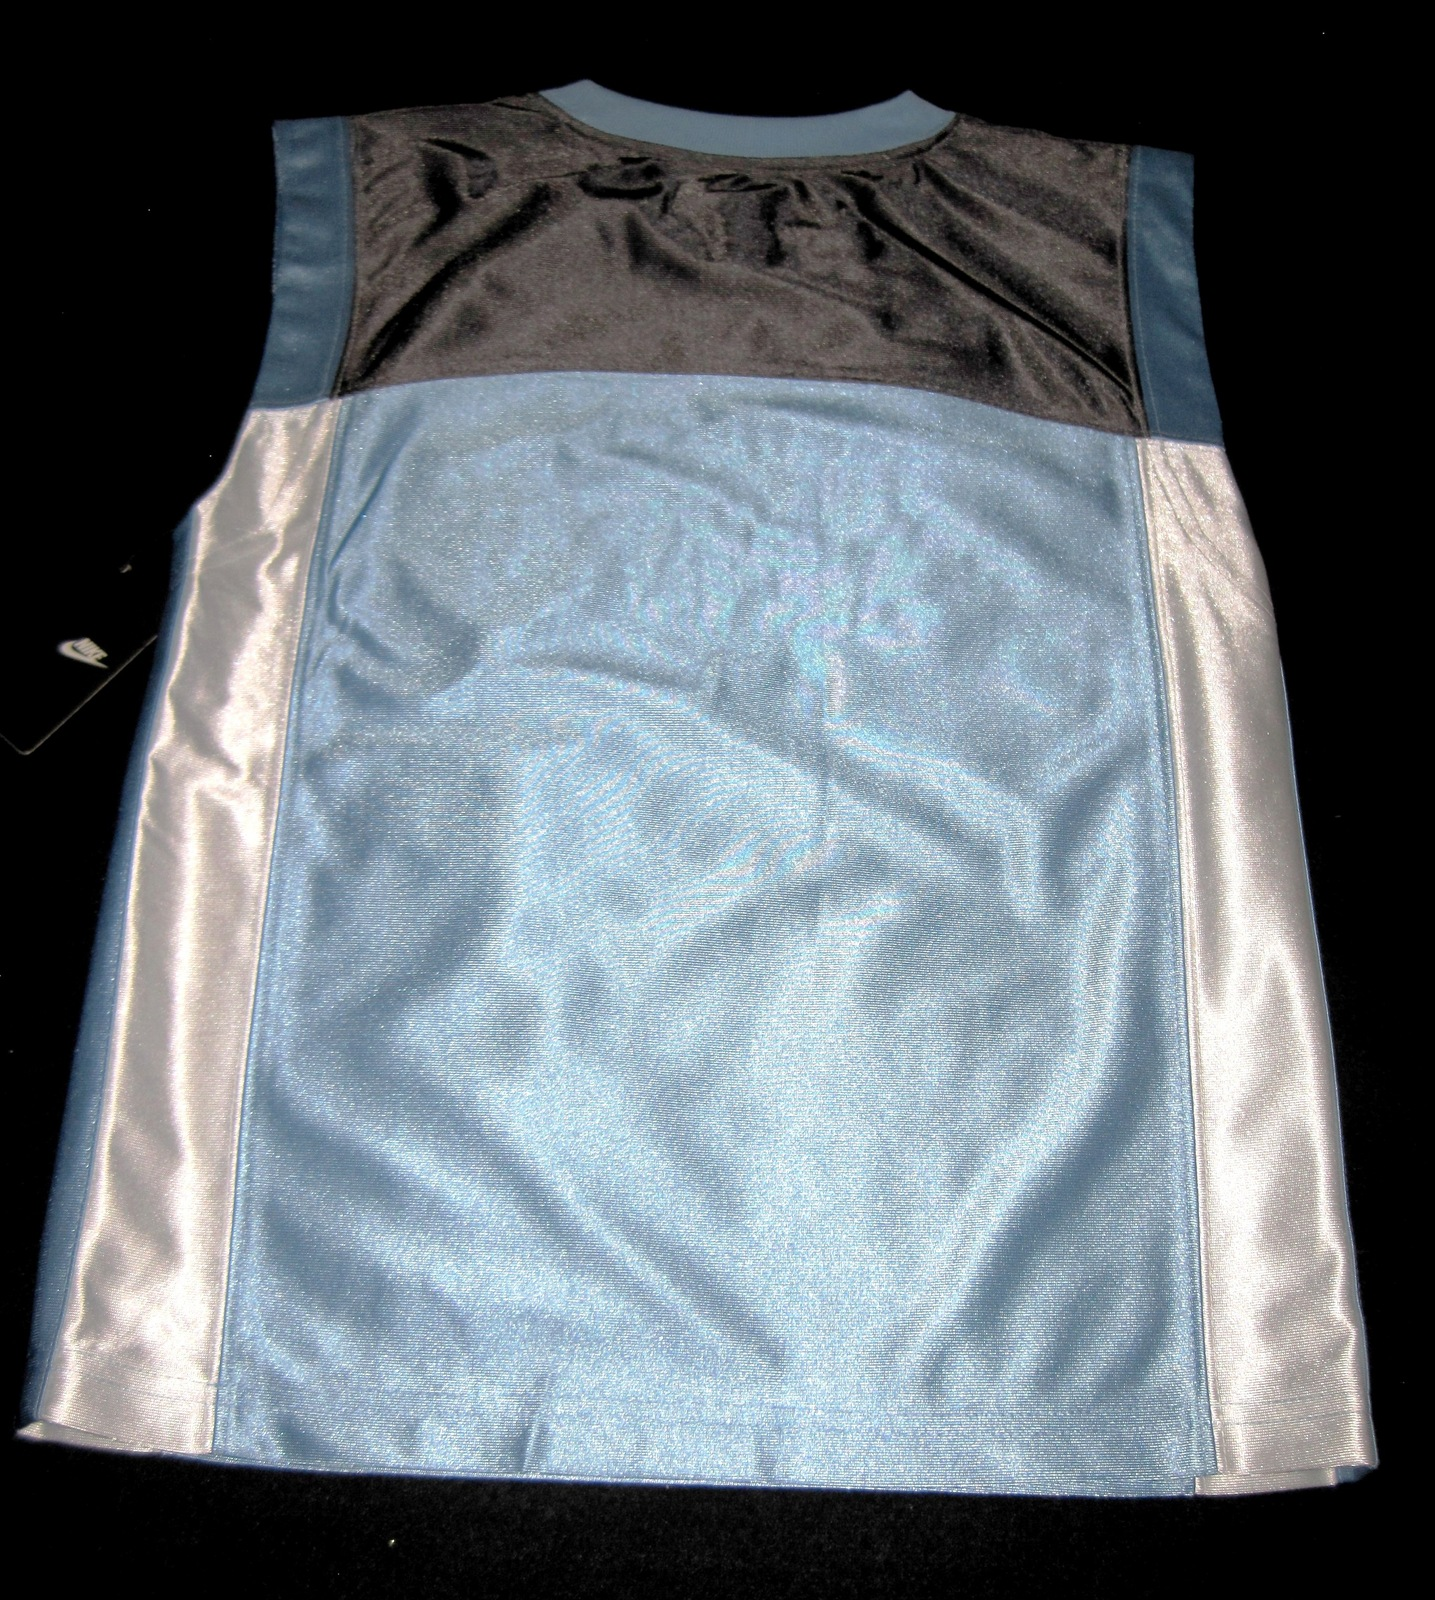 BOYS 7 - Nike - Light Blue-Gray-White BASKETBALL SPORTS JERSEY image 8